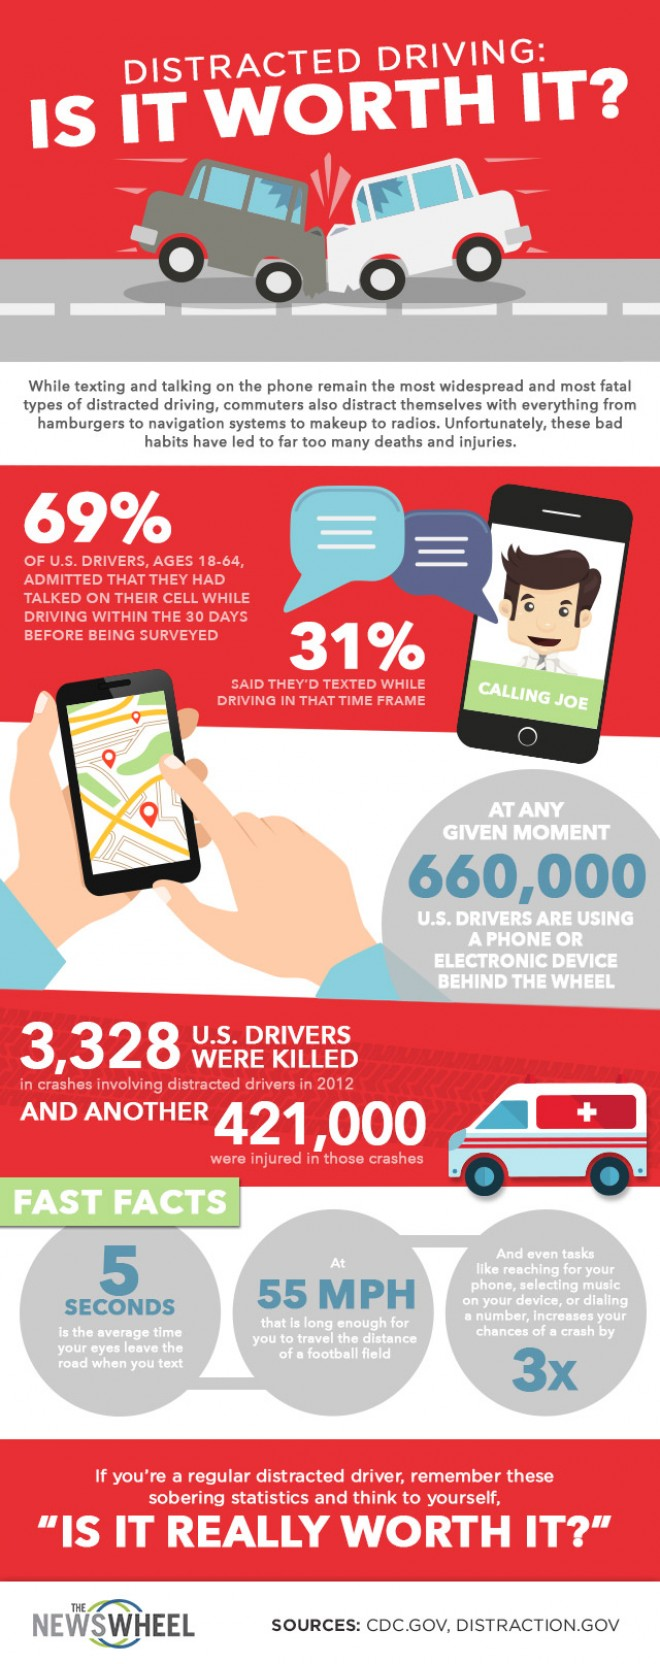 Distracted Driving is it worth it